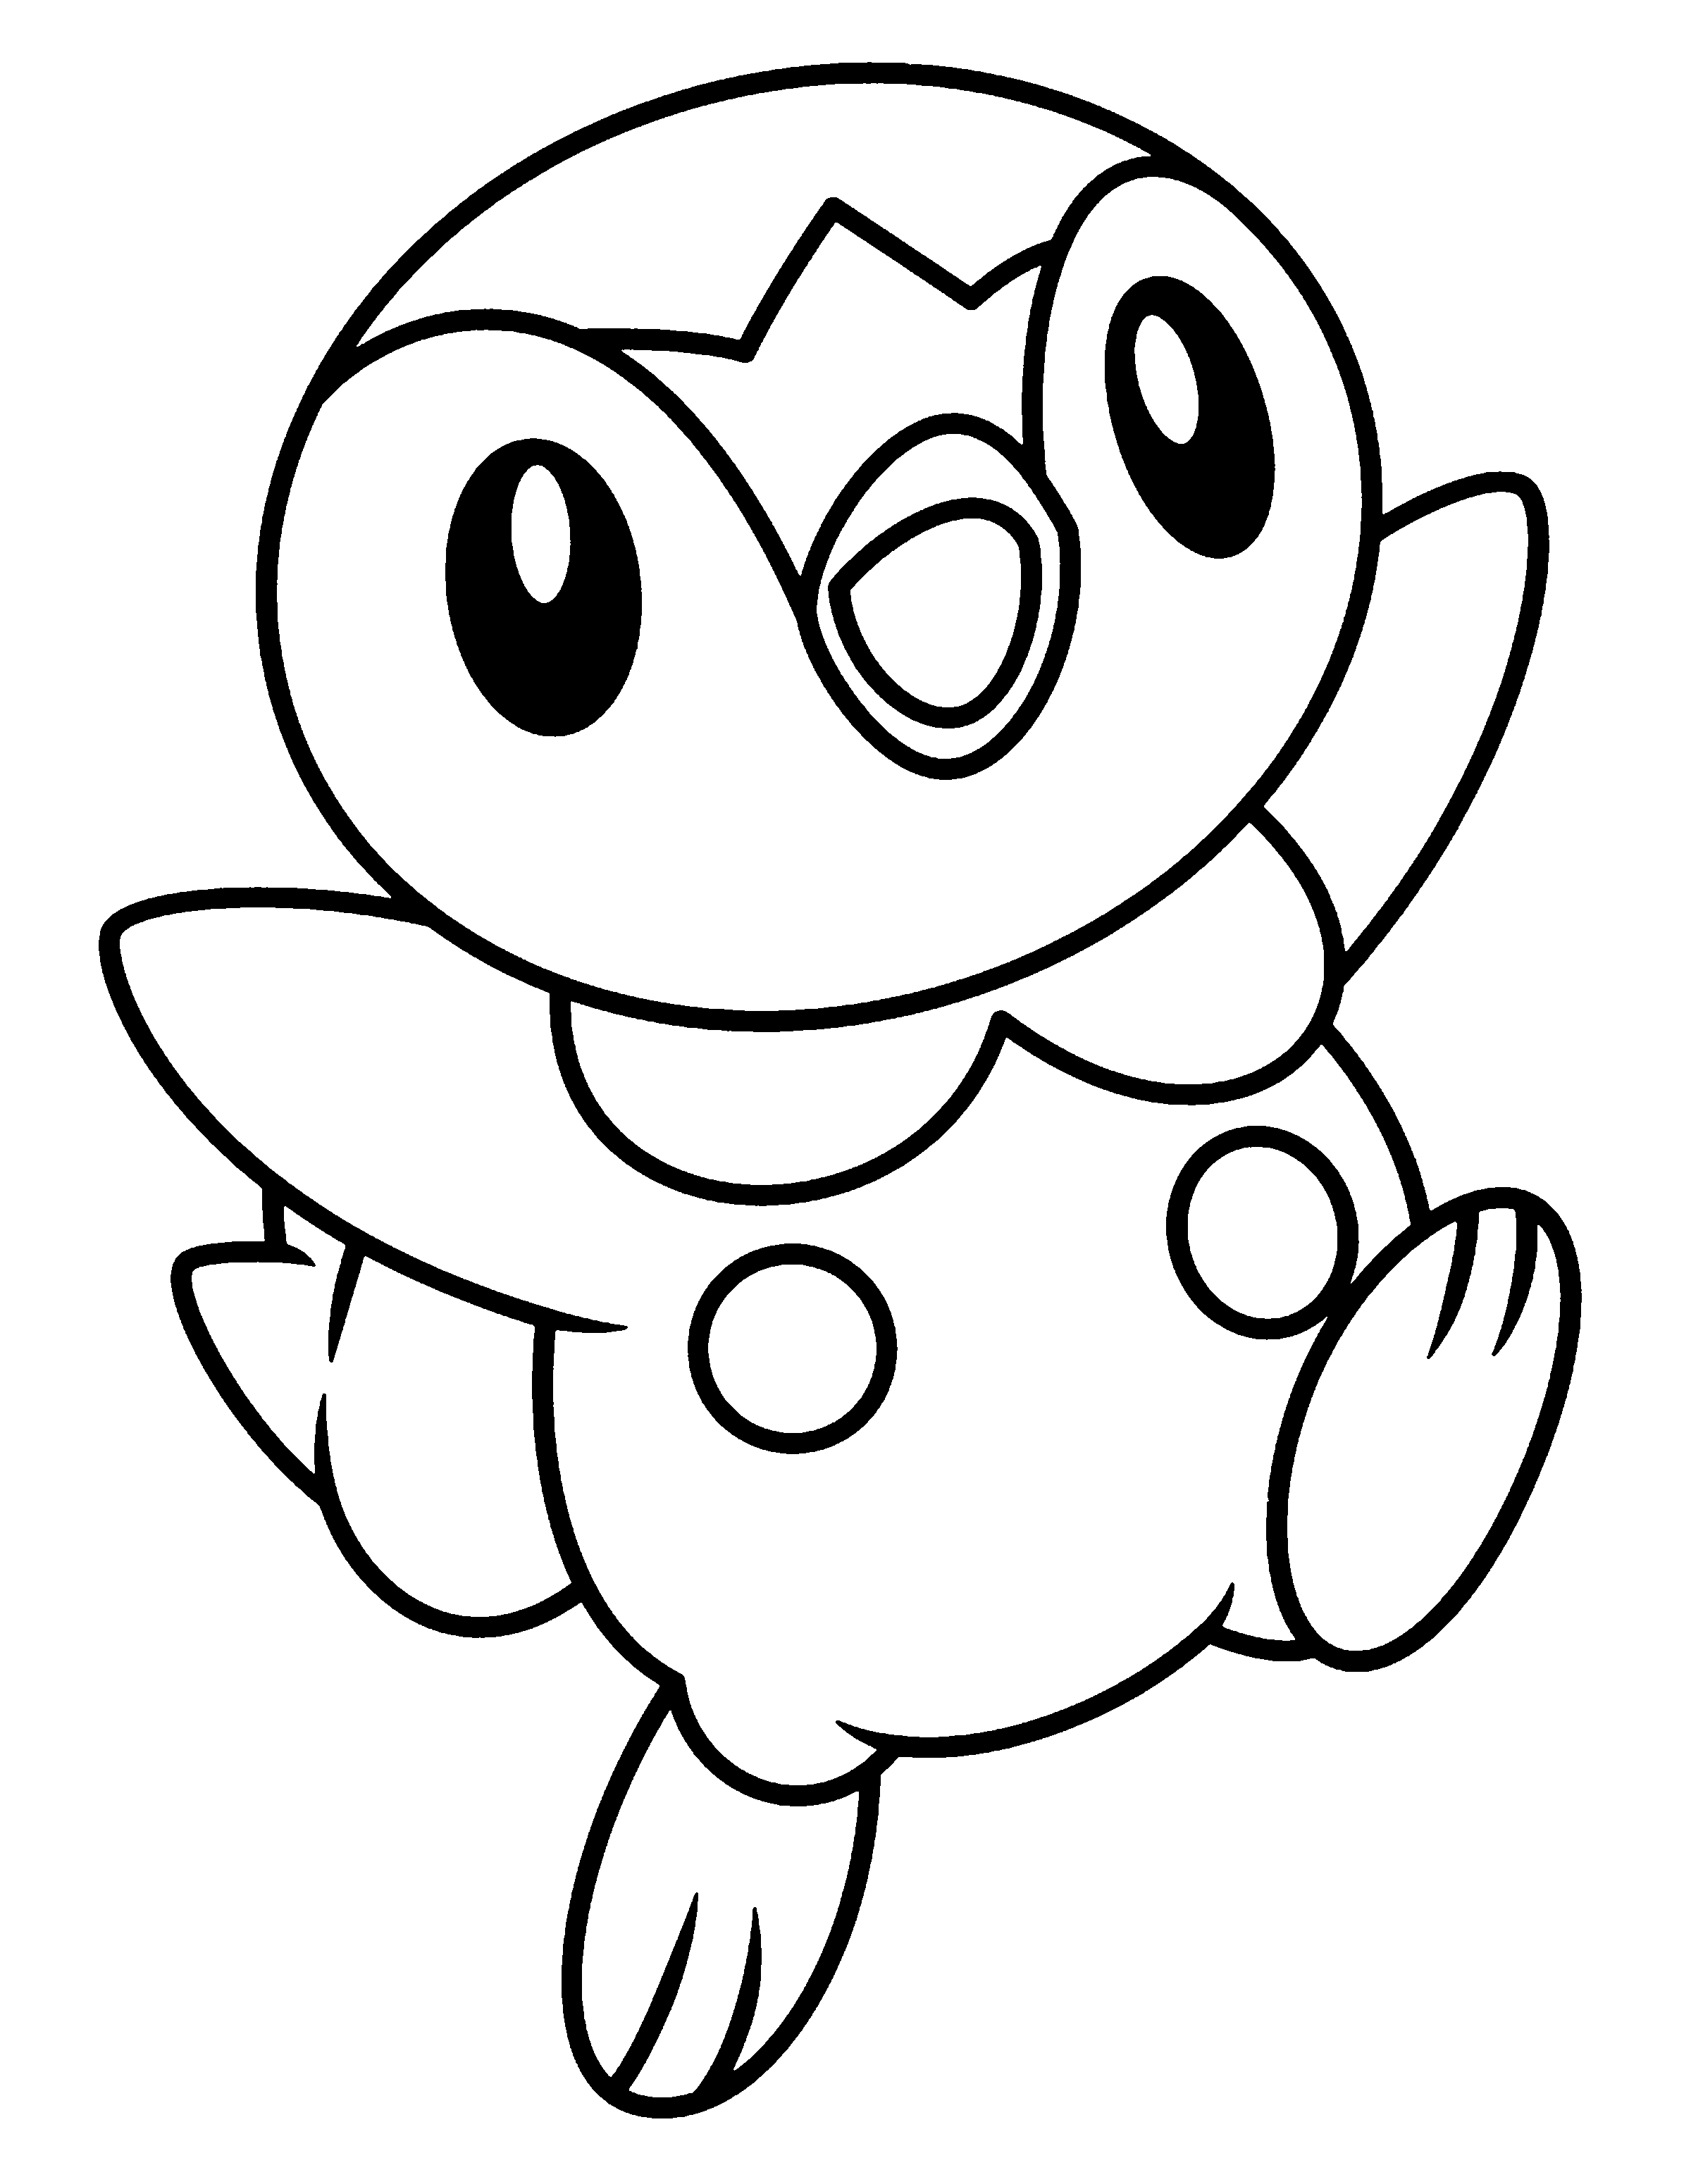 sweet pokemon printable coloring pages - Pictures Of Coloring Pages